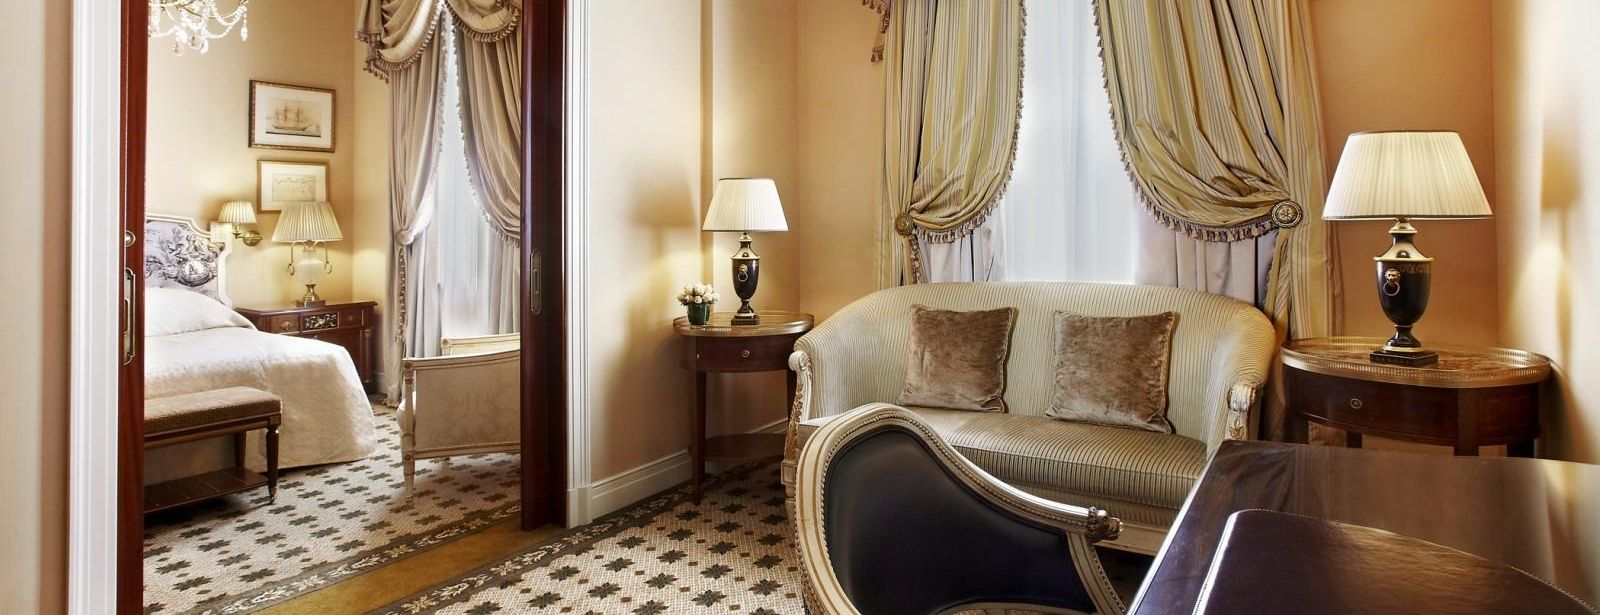 Deluxe Suite at Hotel Grande Bretagne, a Luxury Collection Hotel Athens Greece